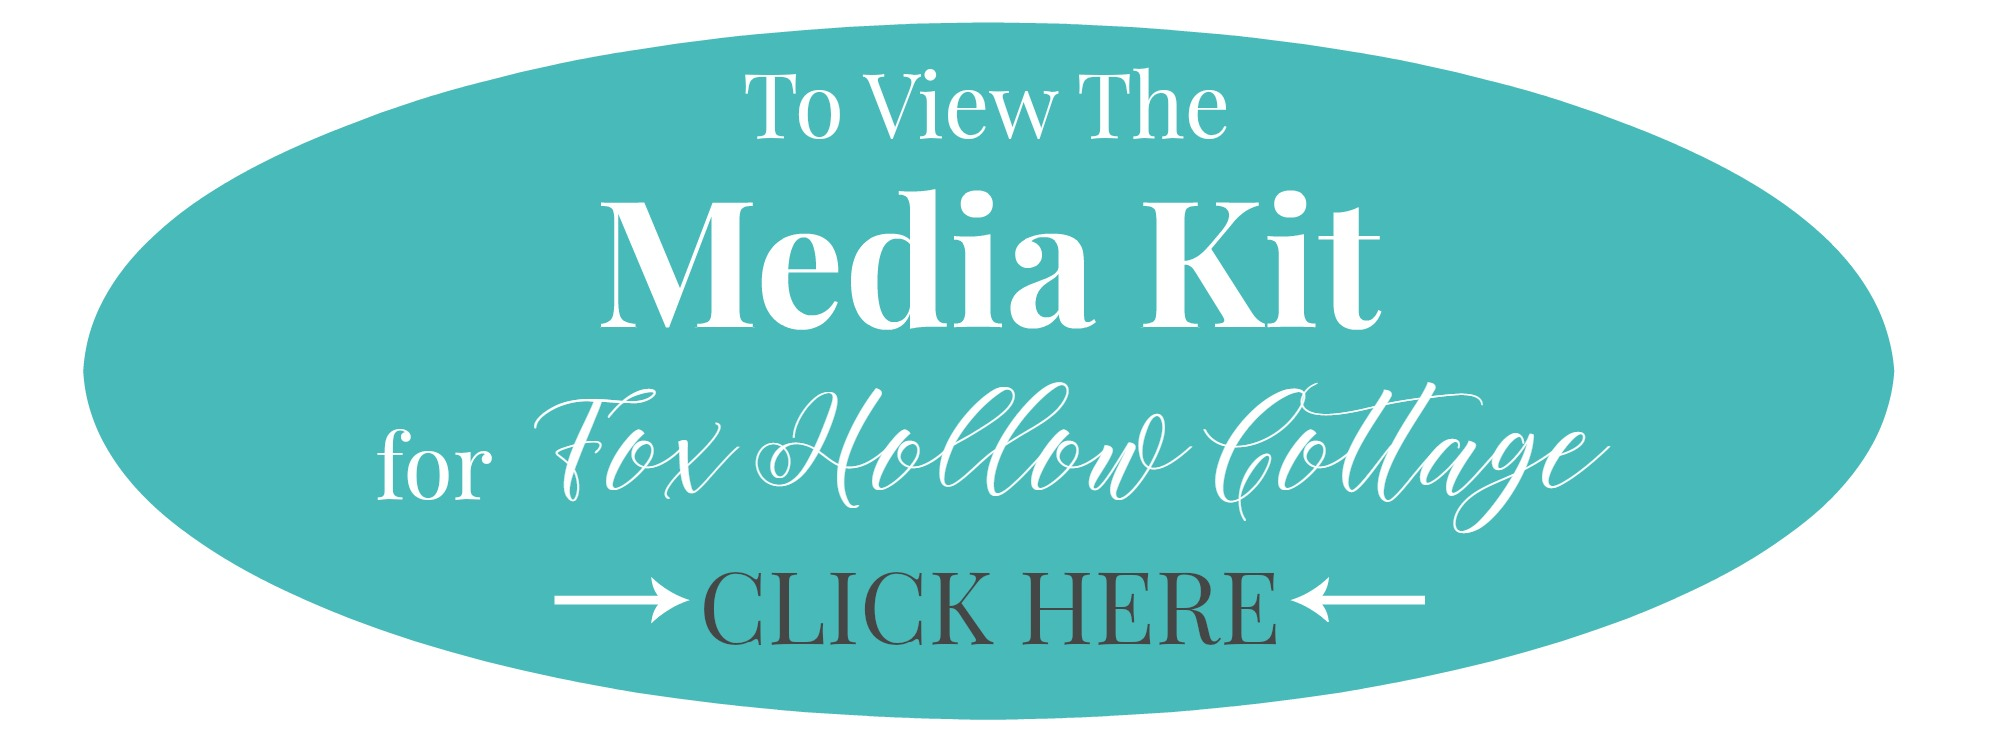 Fox Hollow Cottage Media Kit